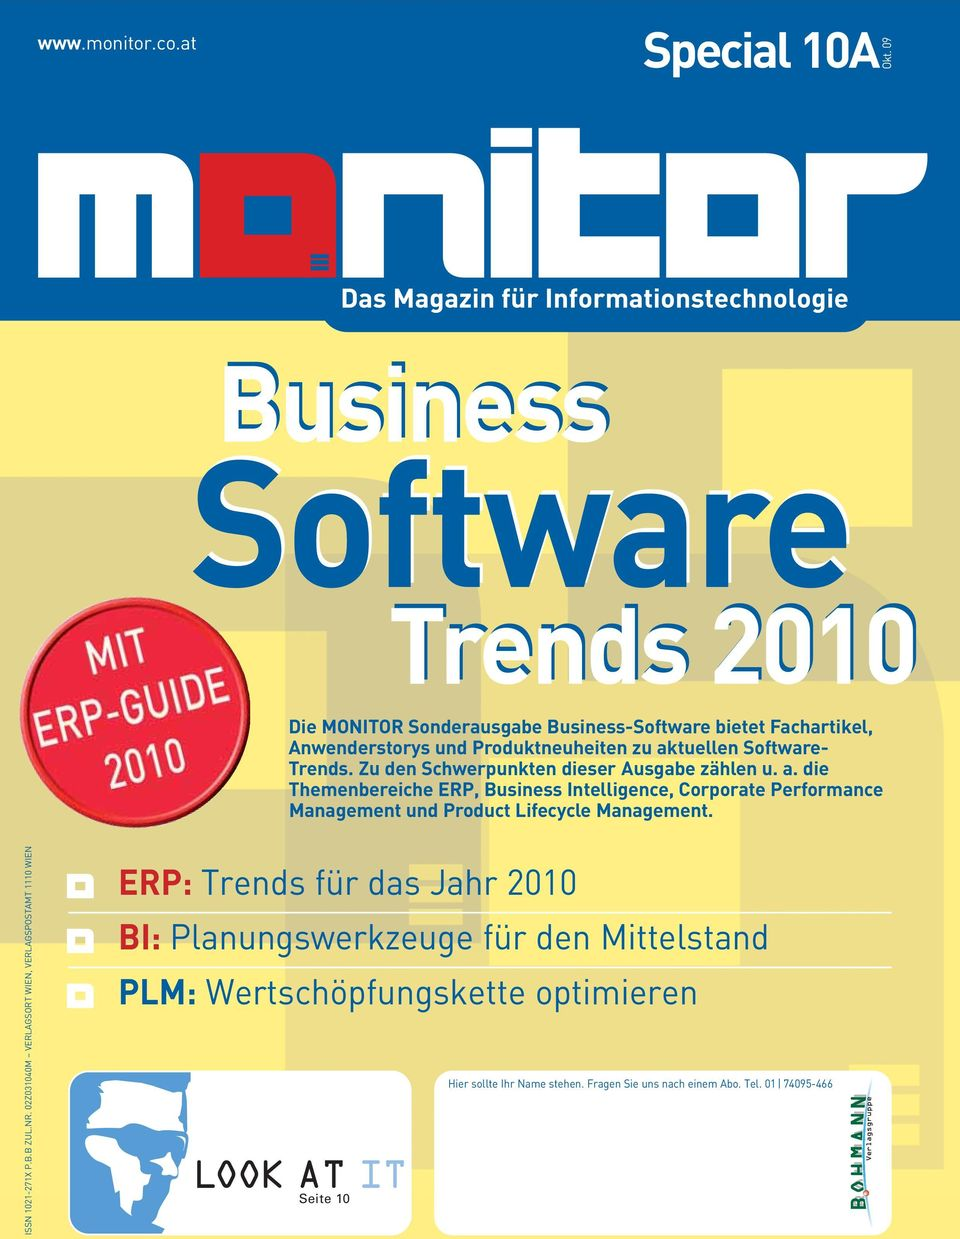 Zu den Schwerpunkten dieser Ausgabe zählen u. a. die Themenbereiche ERP, Business Intelligence, Corporate Performance Management und Product Lifecycle Management.